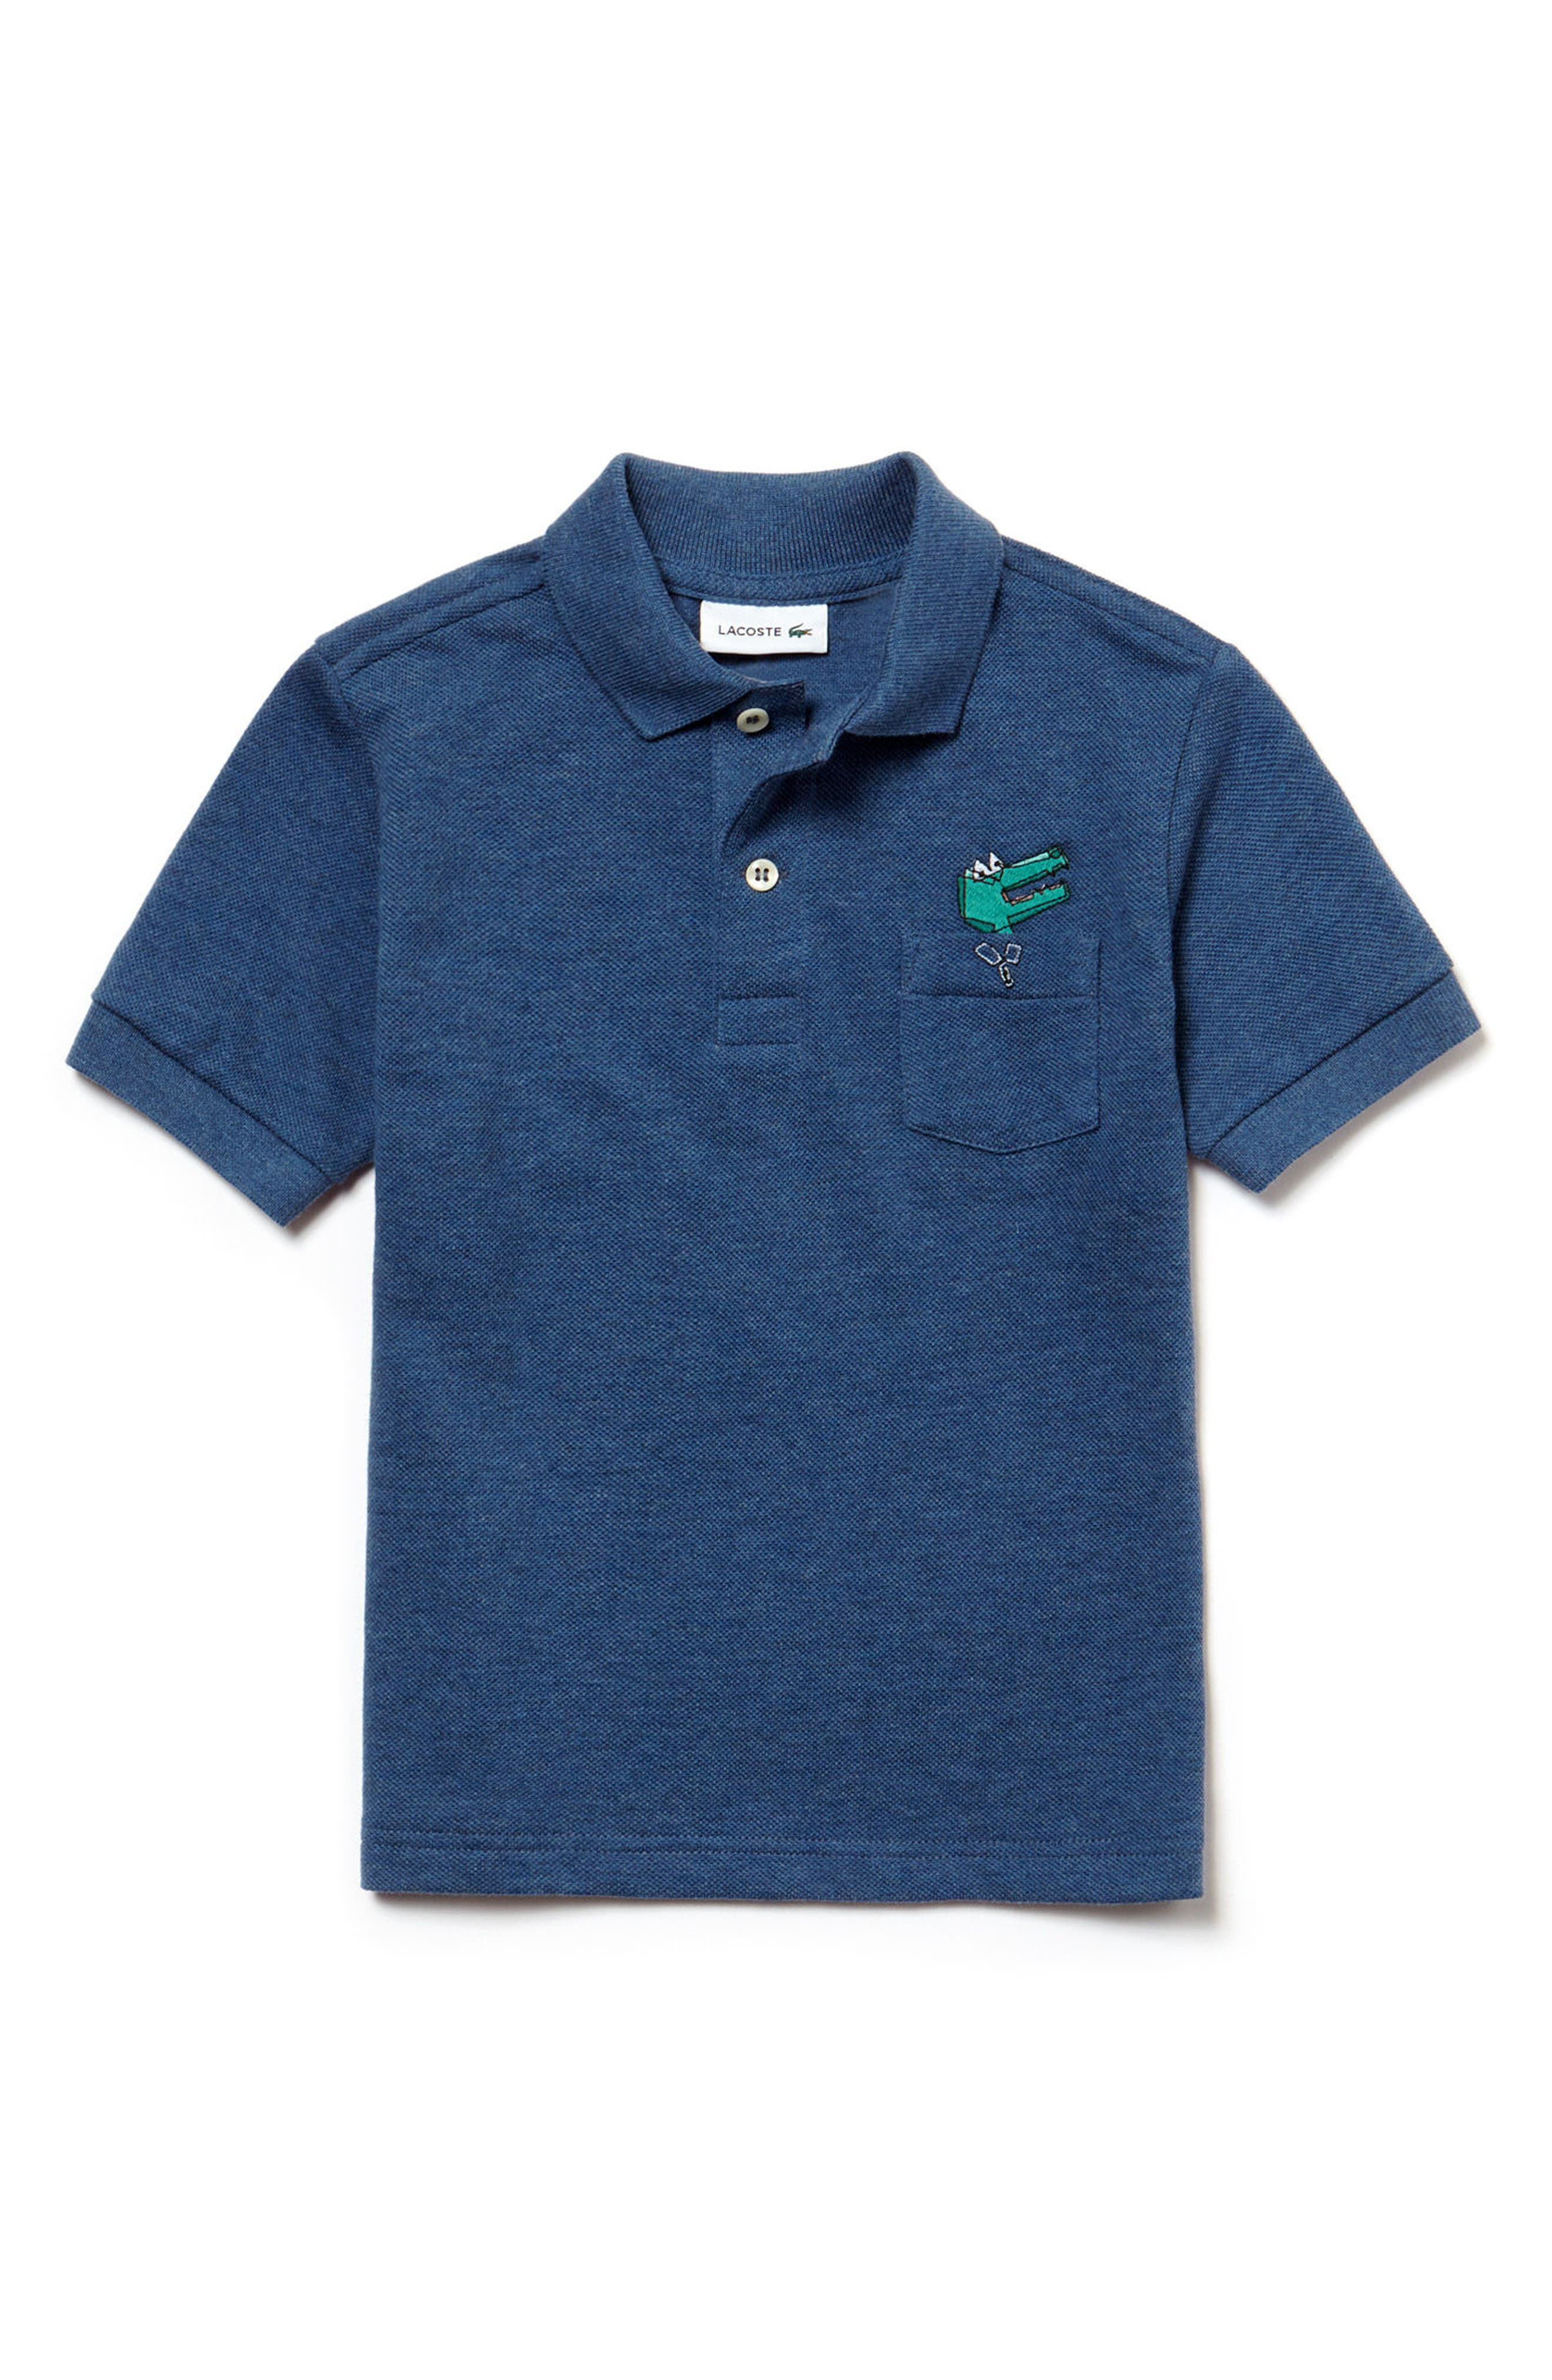 Crocoline Croc Polo,                             Main thumbnail 1, color,                             Elysee Chine